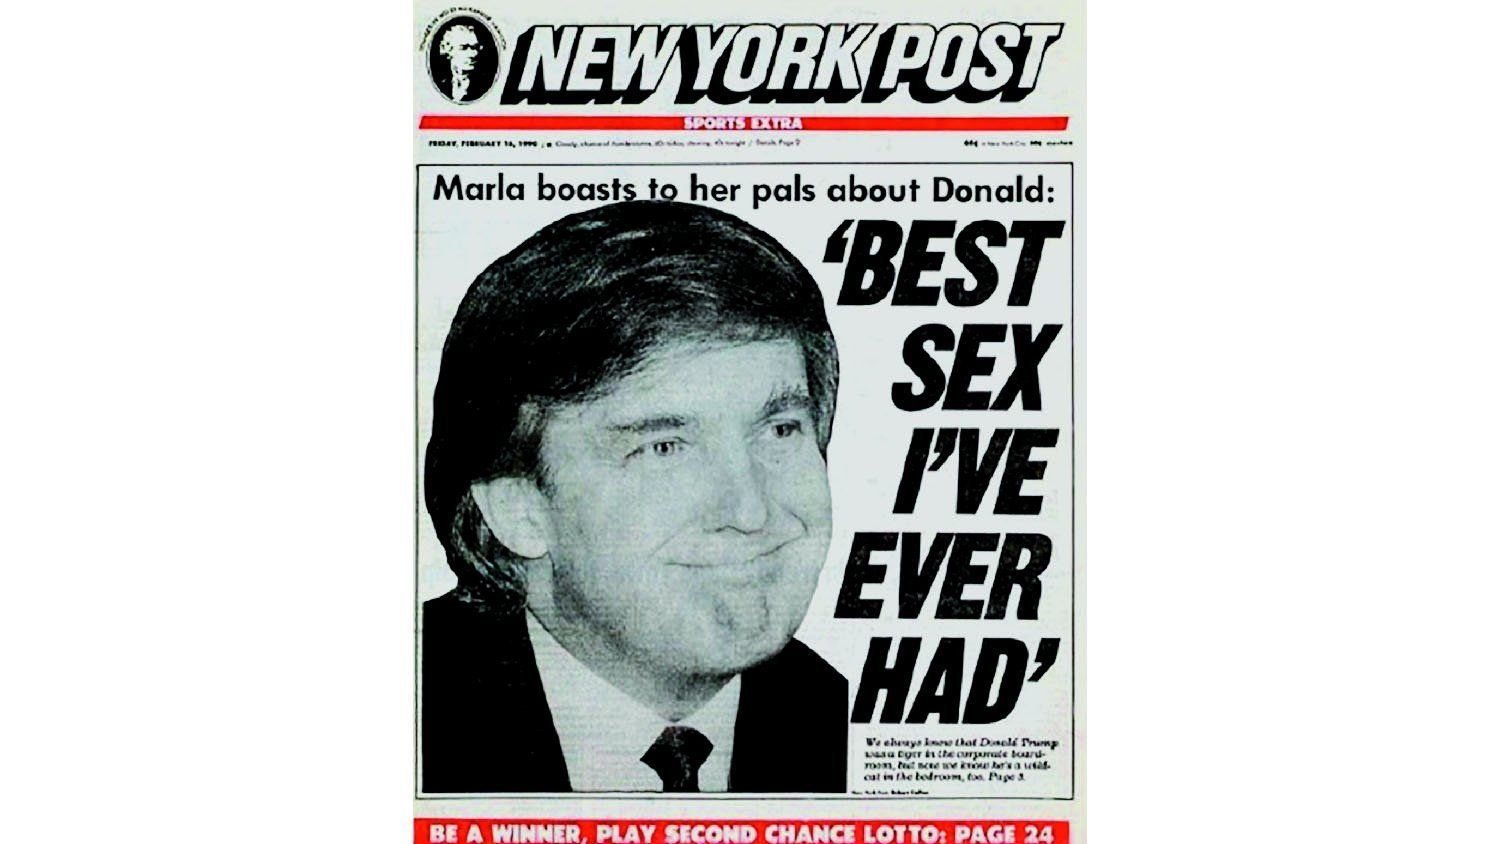 Trump Post front page